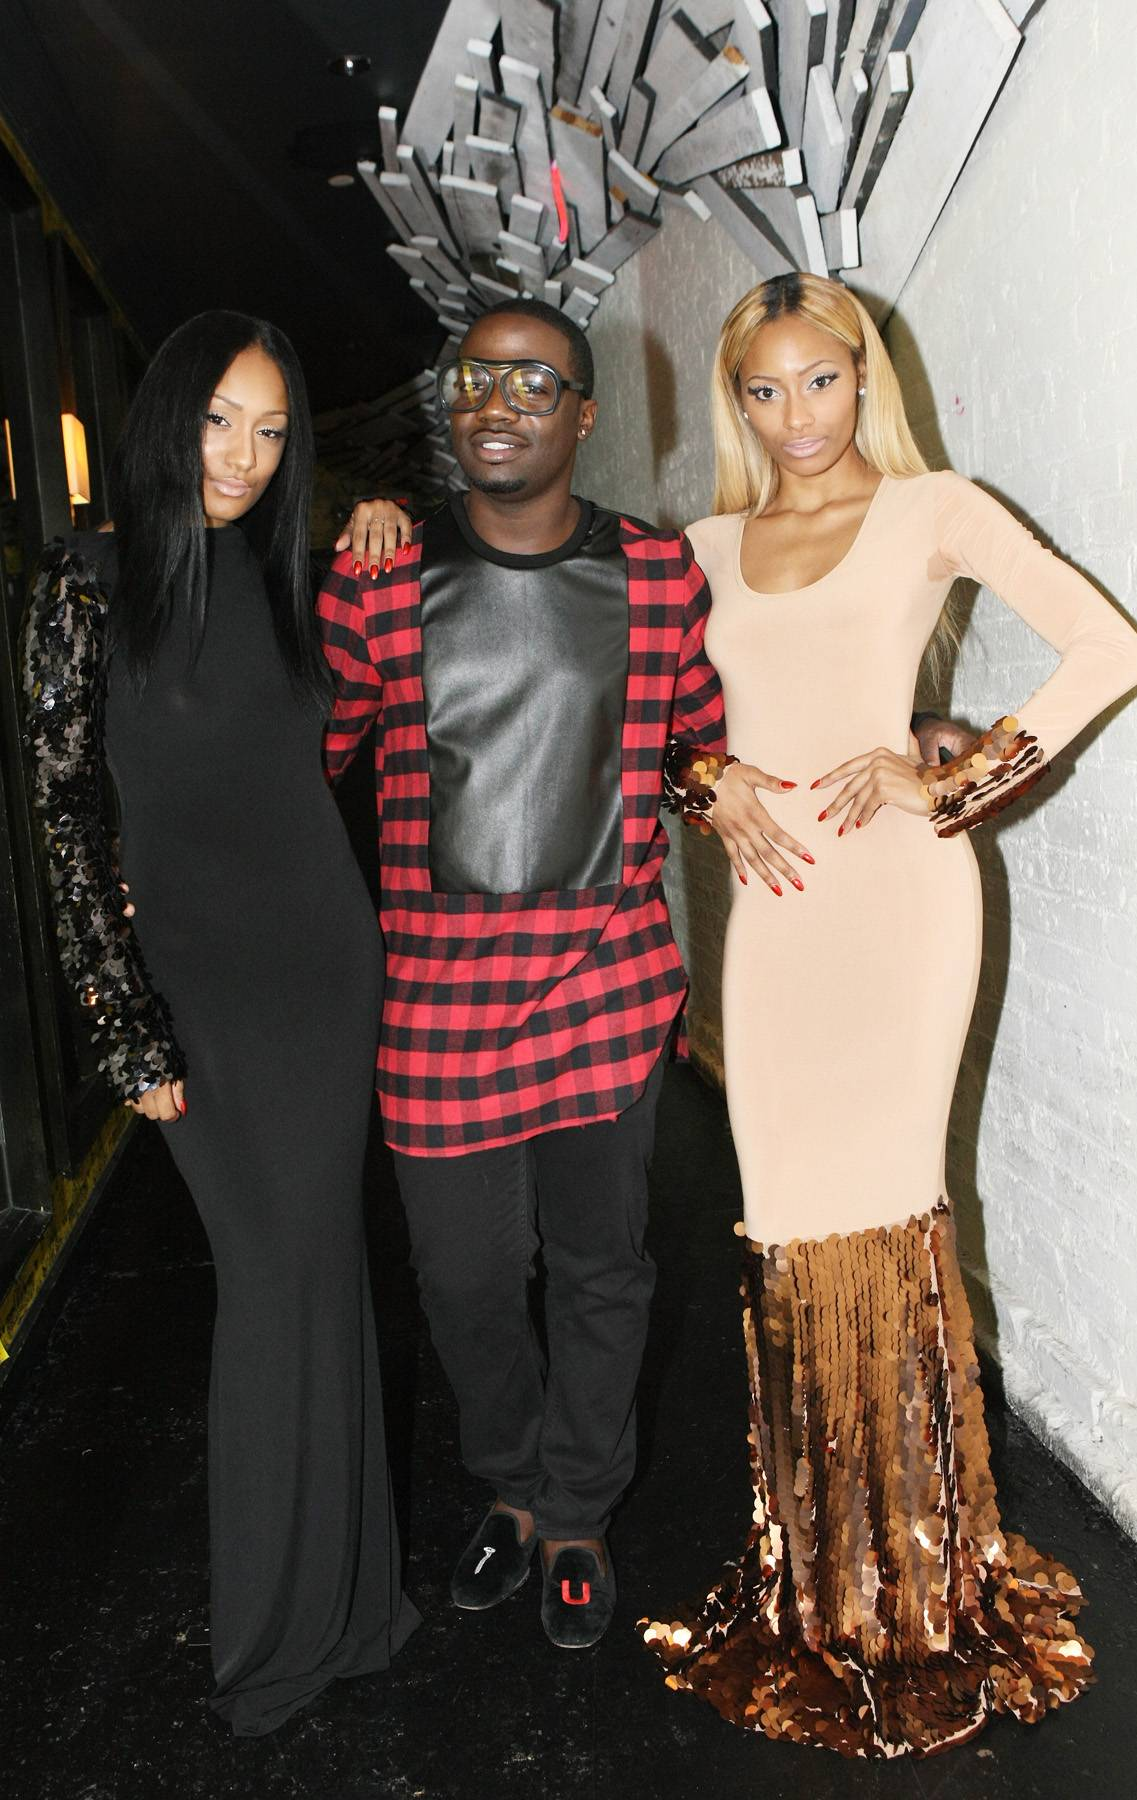 Like Rice - (From L-R) Model Amina Katan, designer Duckie Confetti and Adina Katan pose for a pic backstage on 106. (Photo: Bennett Raglin/BET/Getty Images for BET)